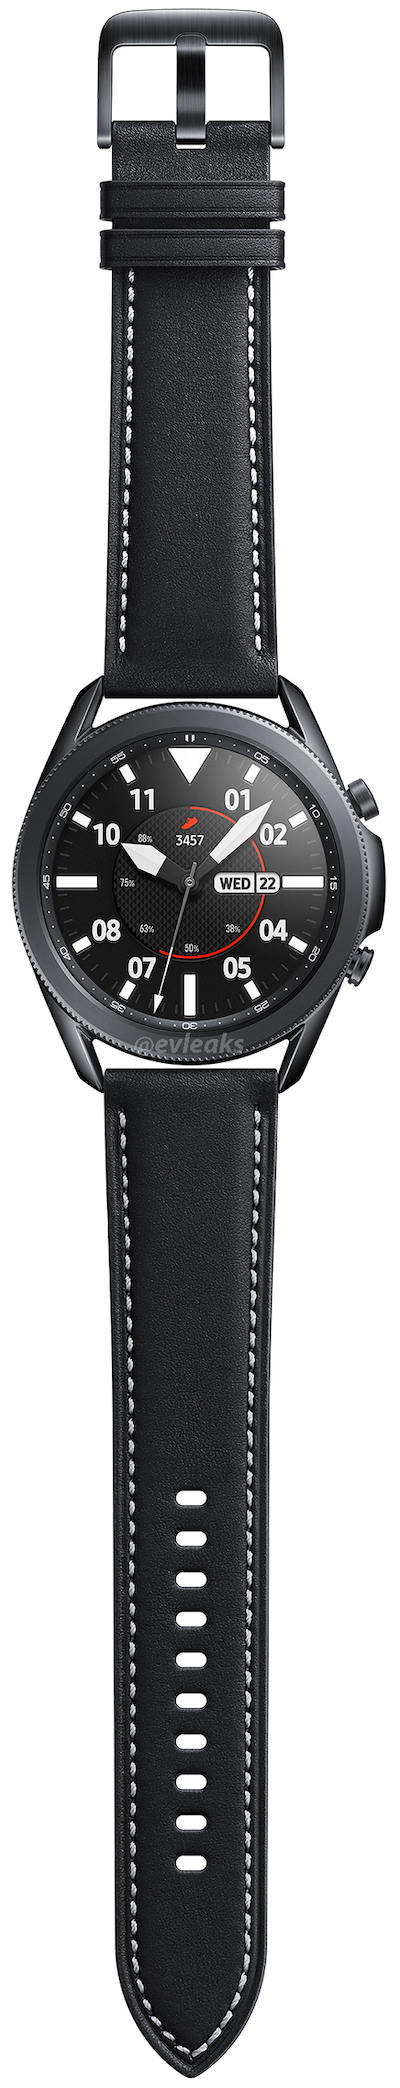 Samsung Galaxy Watch 3 Schwarz